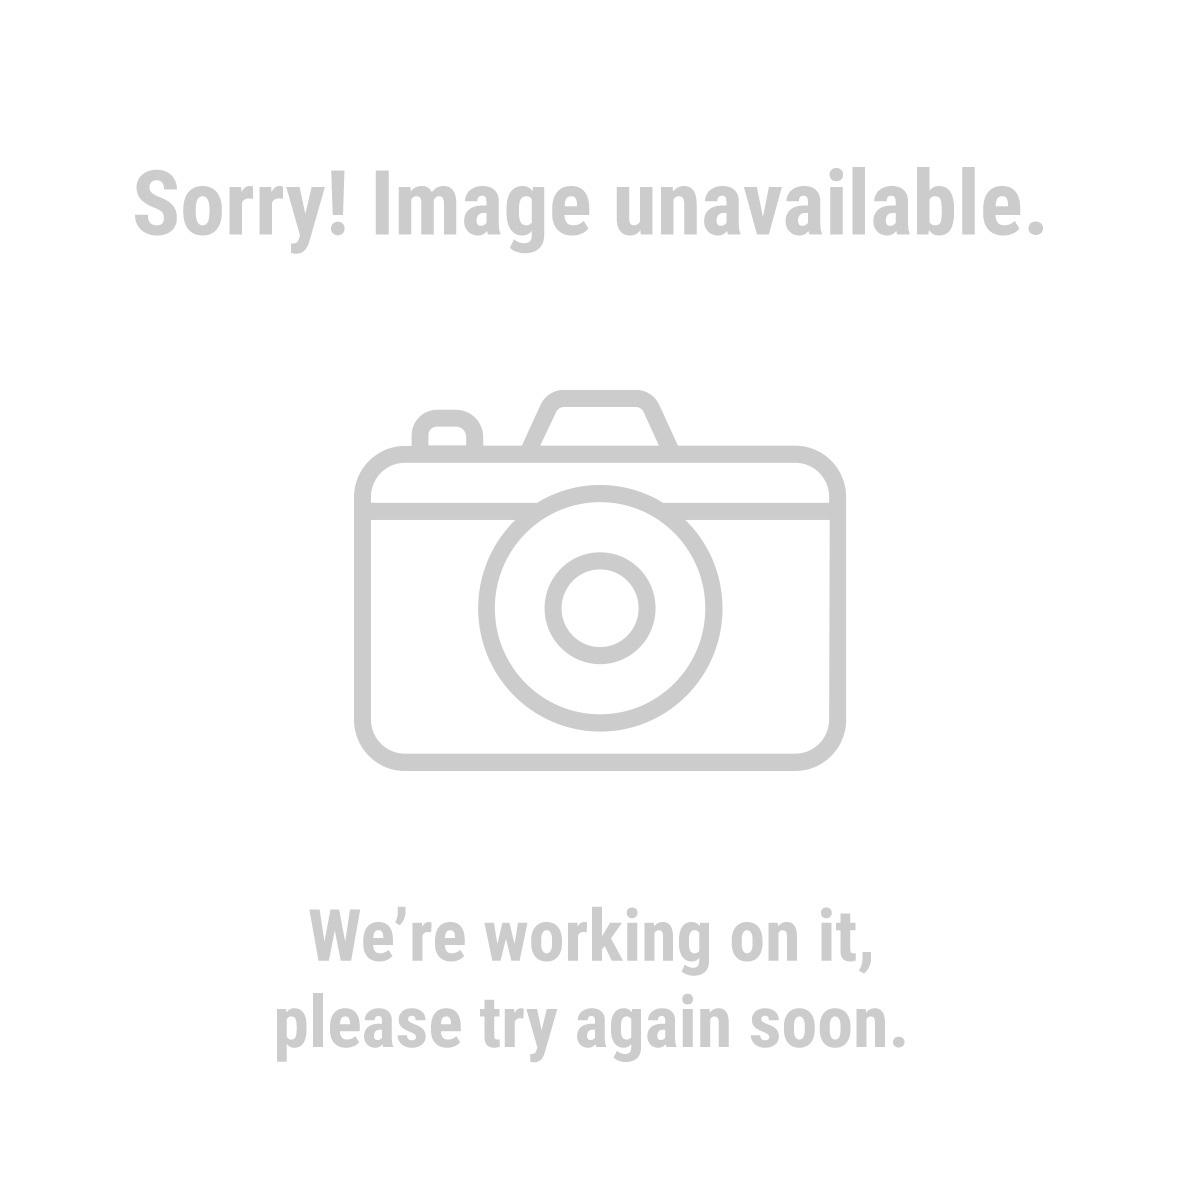 Central Forge 32205 3 Piece Putty Knife Set